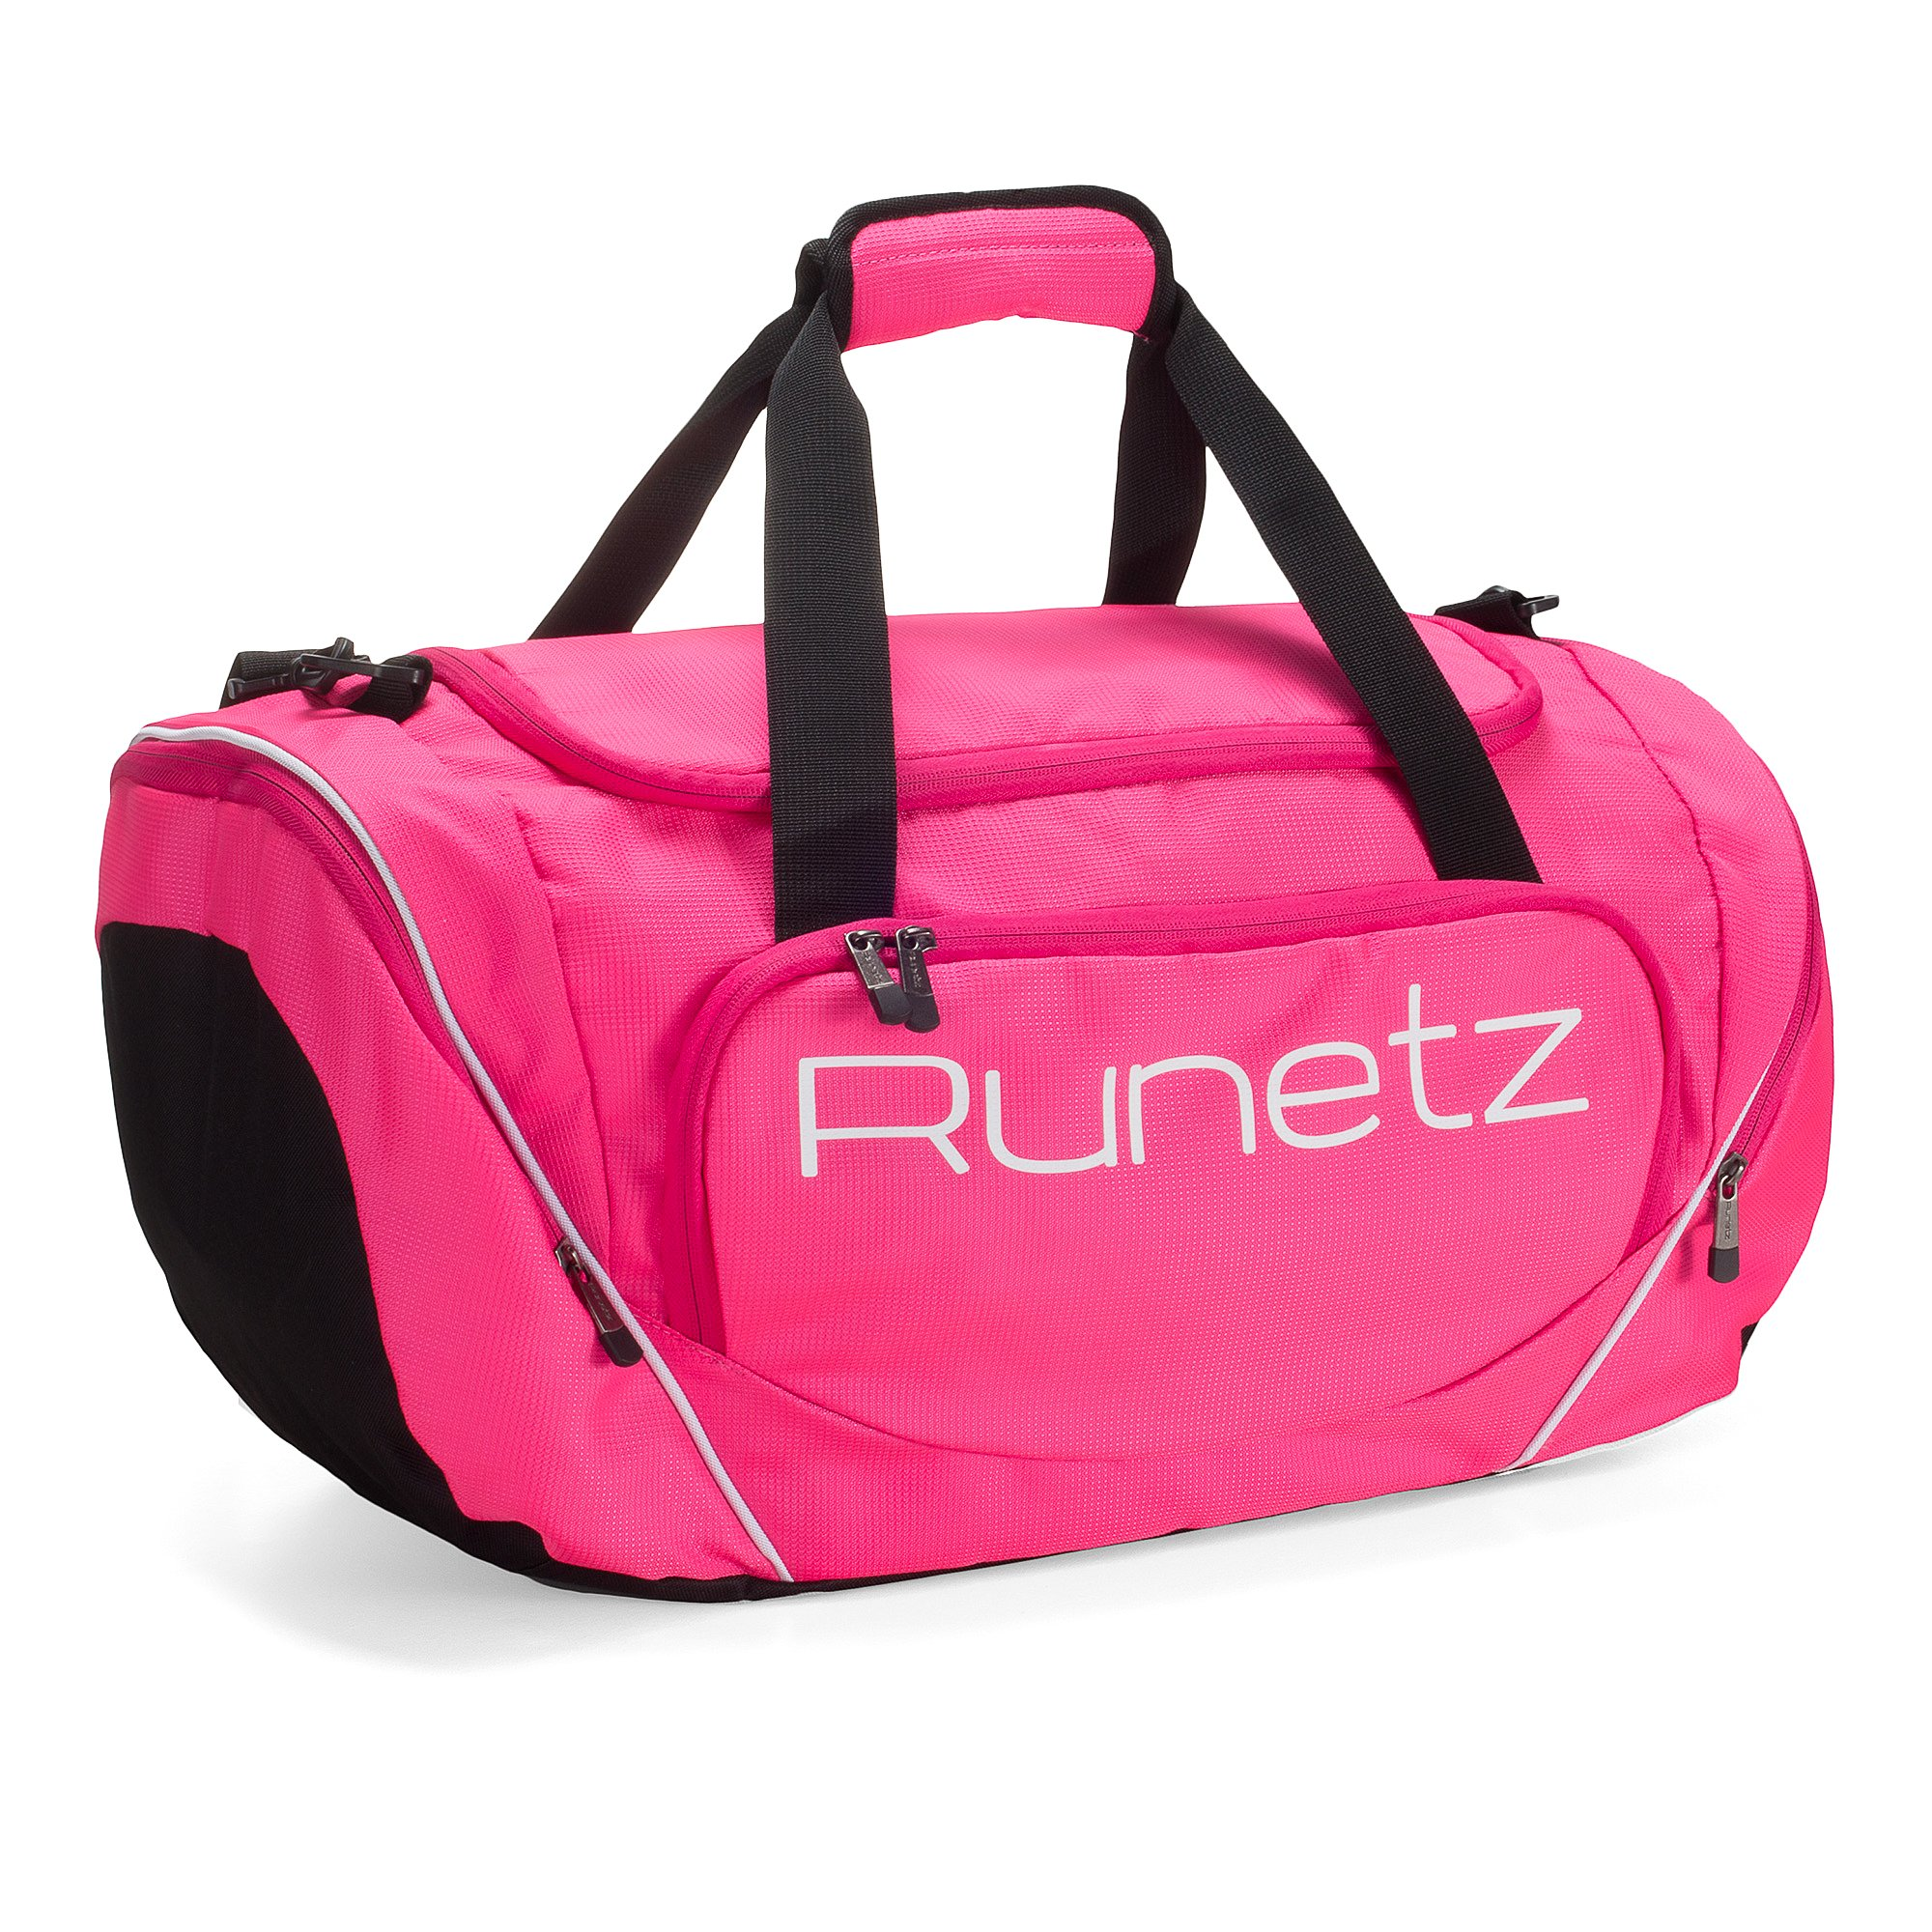 Runetz Gym Bag for Women and Men Duffle Bag with Wet Pocket, Travel Gym Bag with shoe compartment Duffel Bag - 20 inch Large - PINK by Runetz